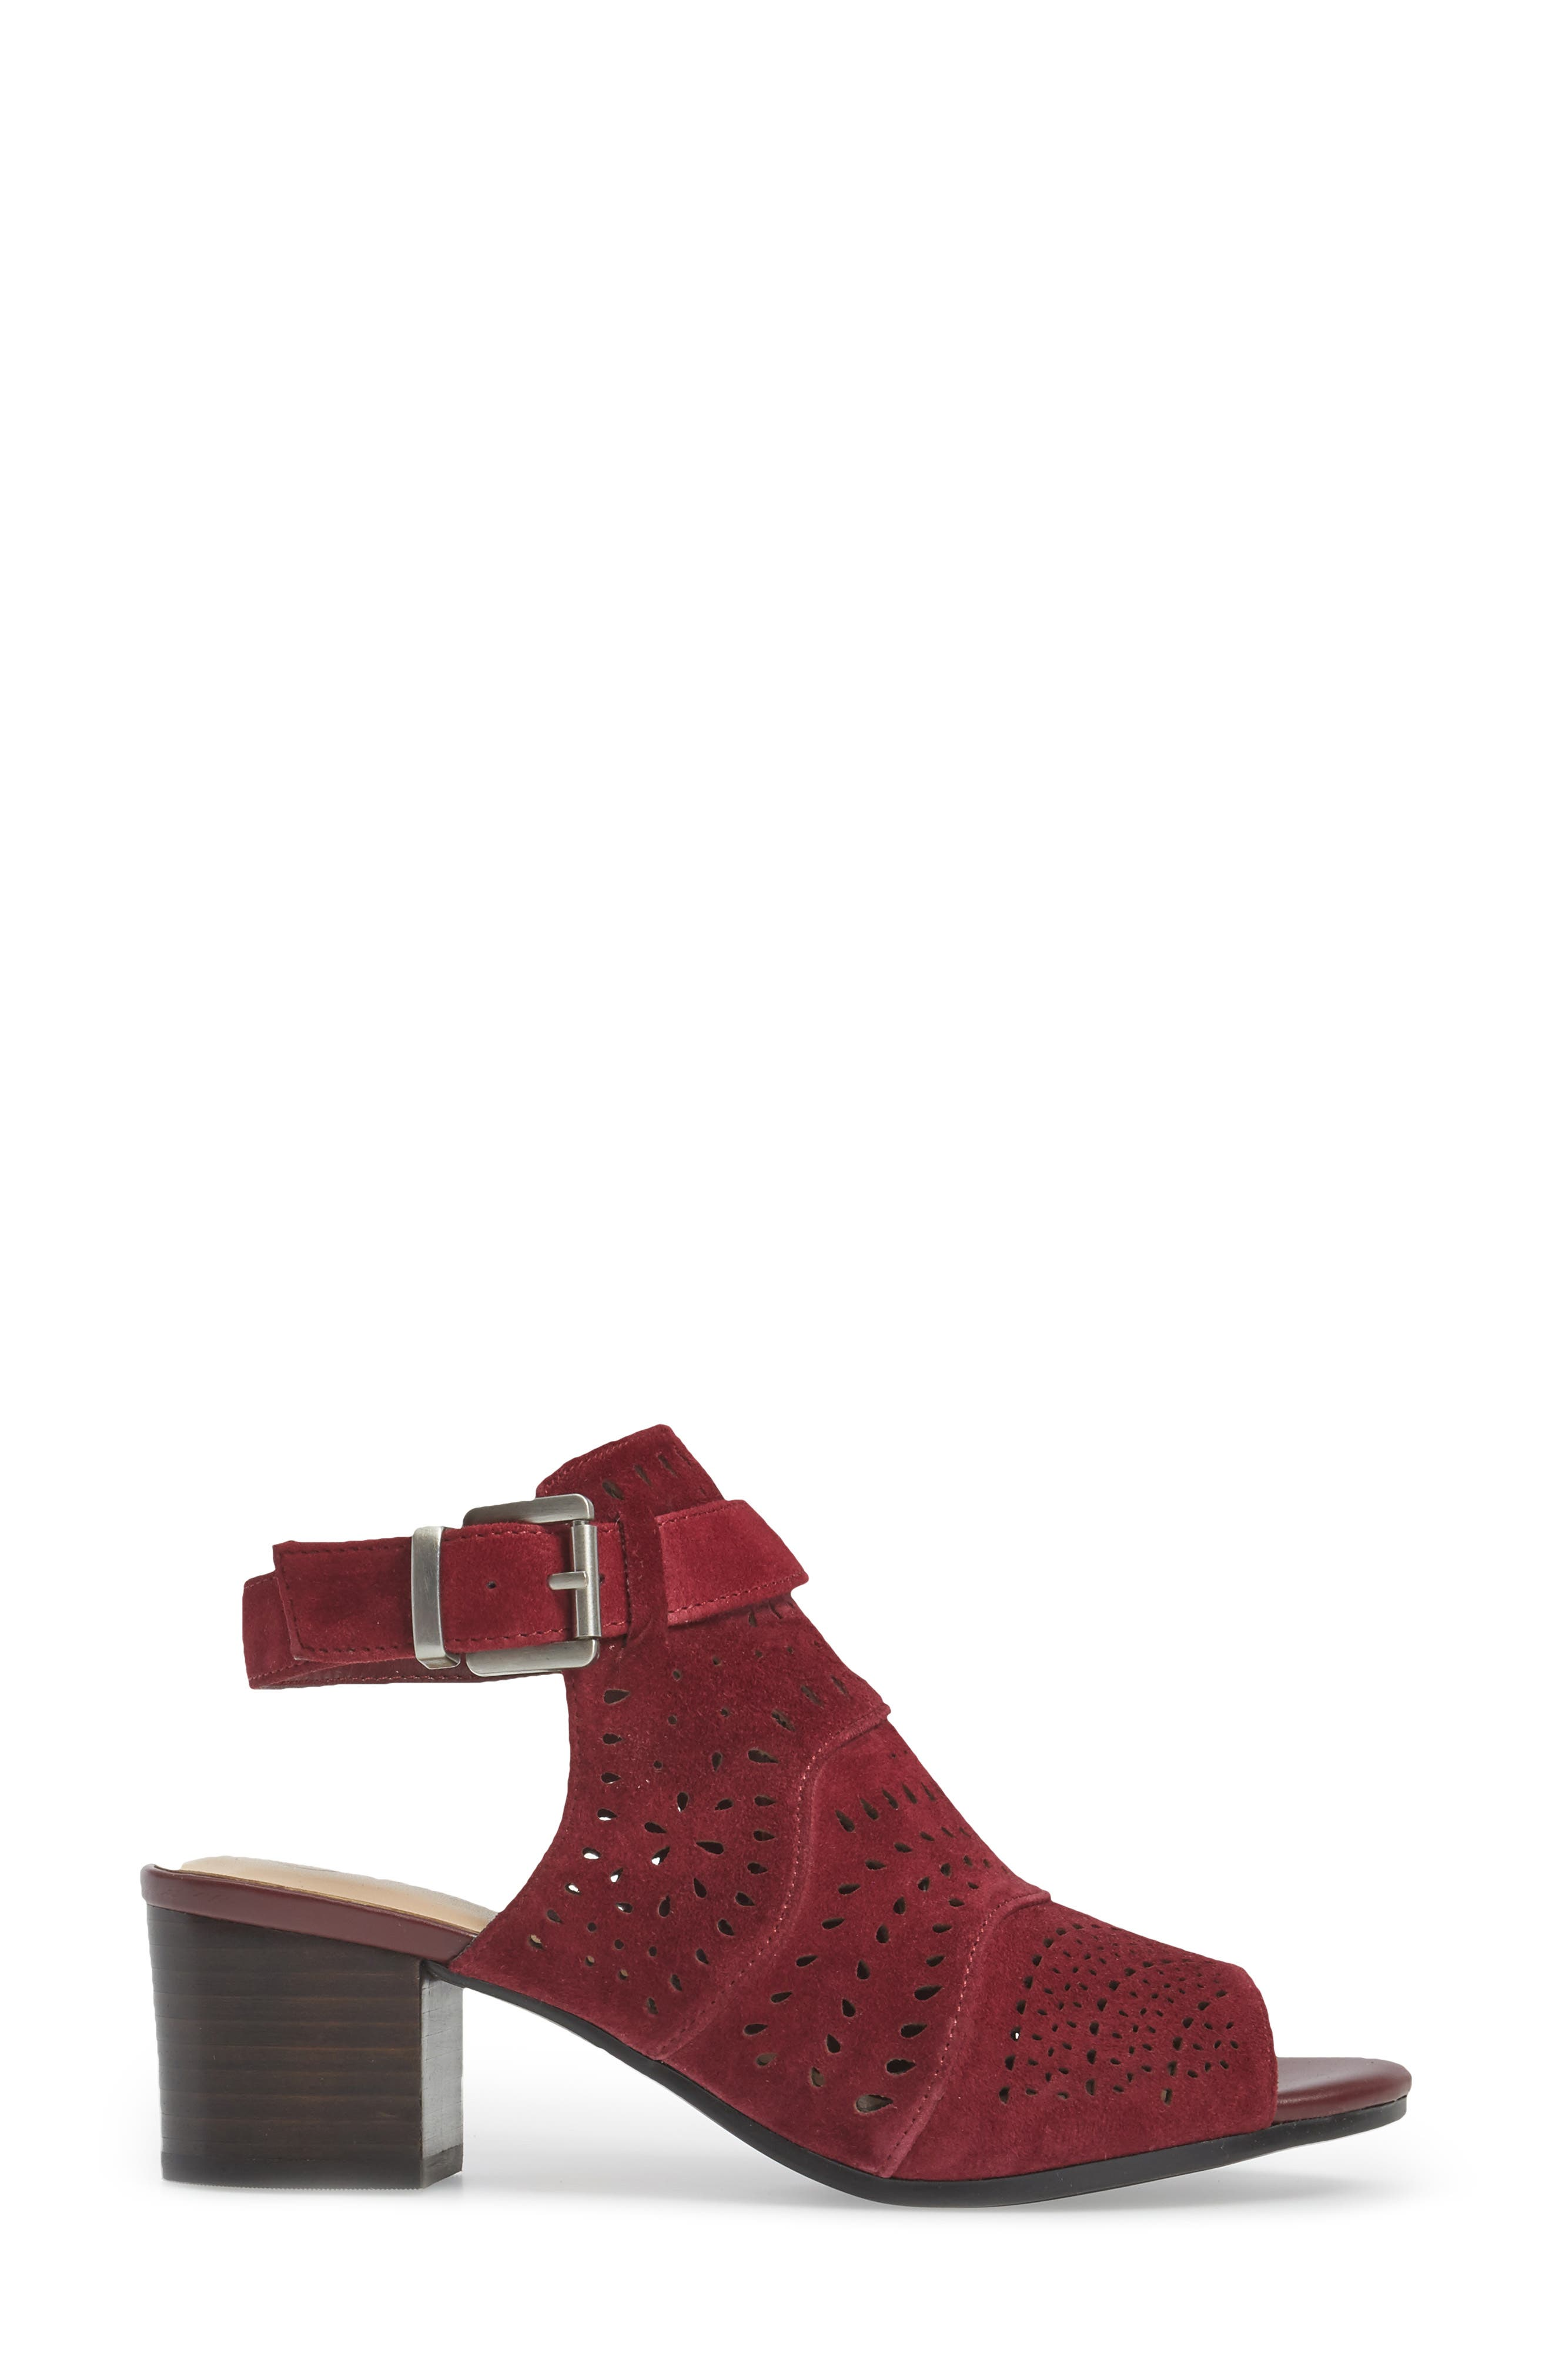 Fonda Perforated Sandal,                             Alternate thumbnail 3, color,                             Burgundy Suede